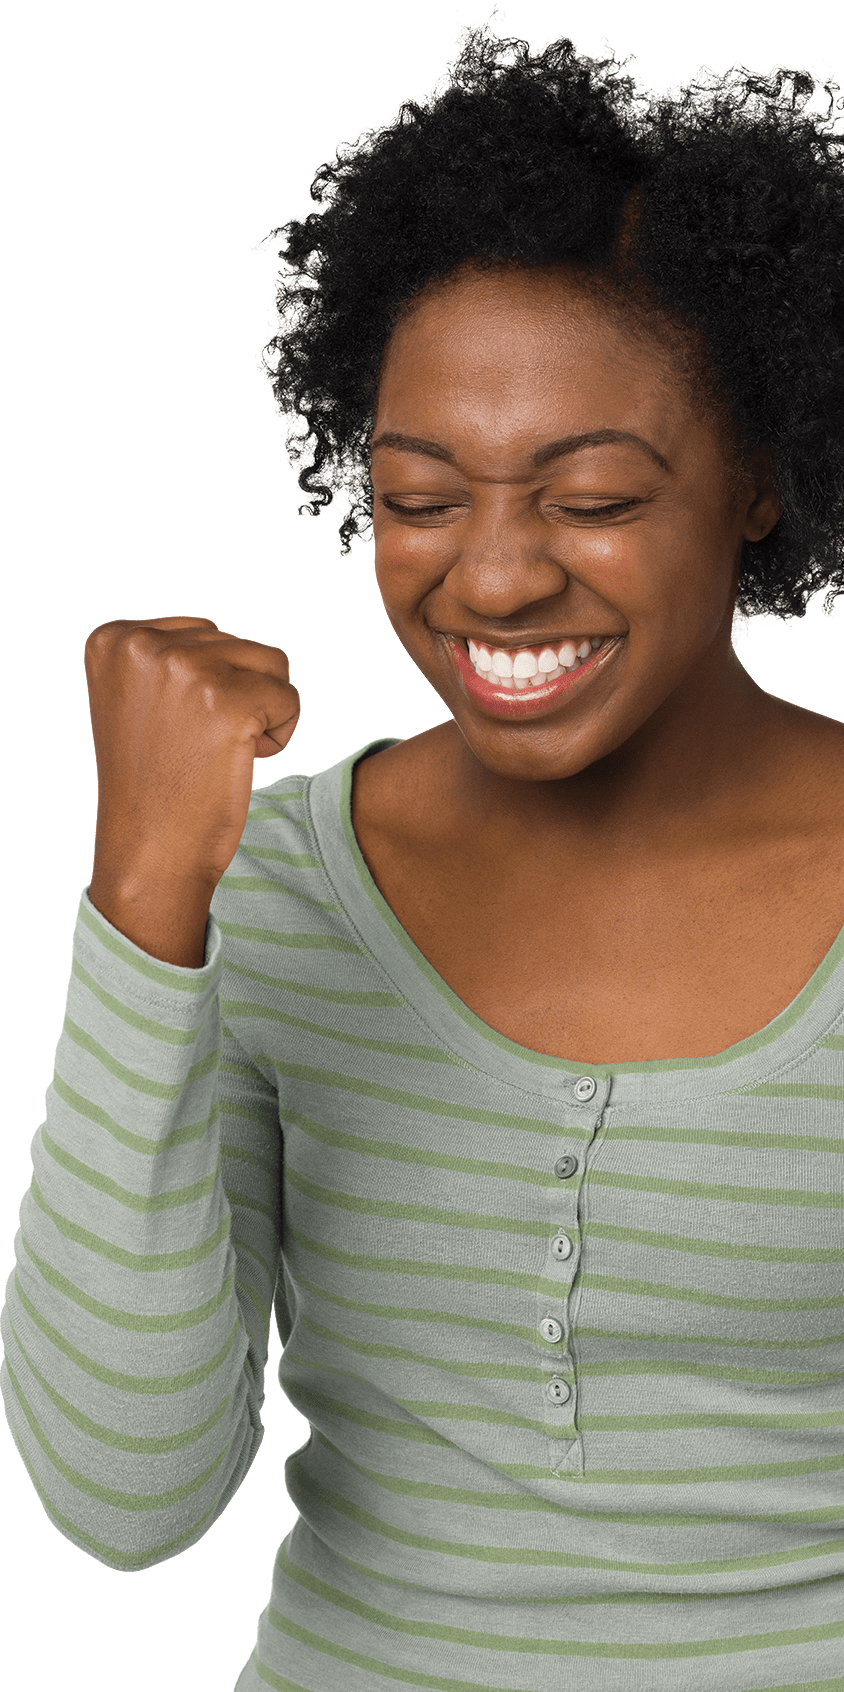 woman showing excited emotion